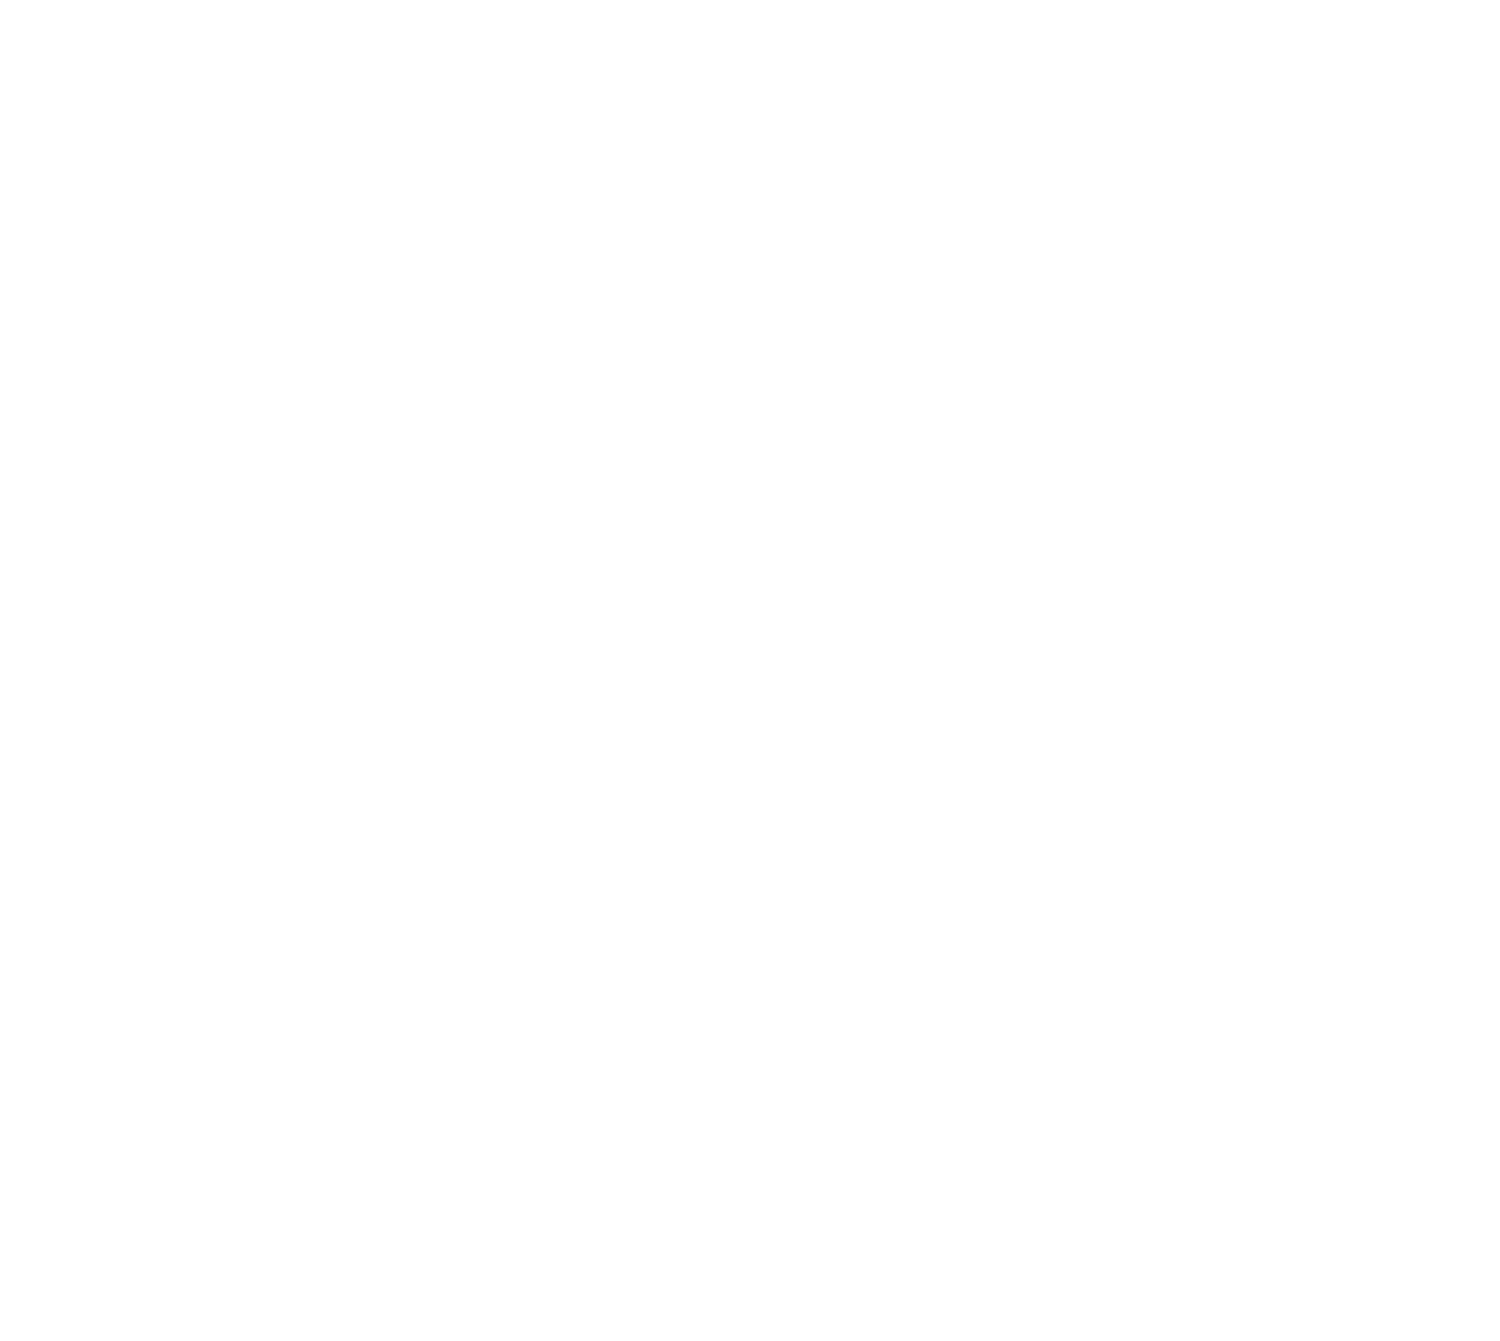 14K Media: Colorado Video and Photo Production